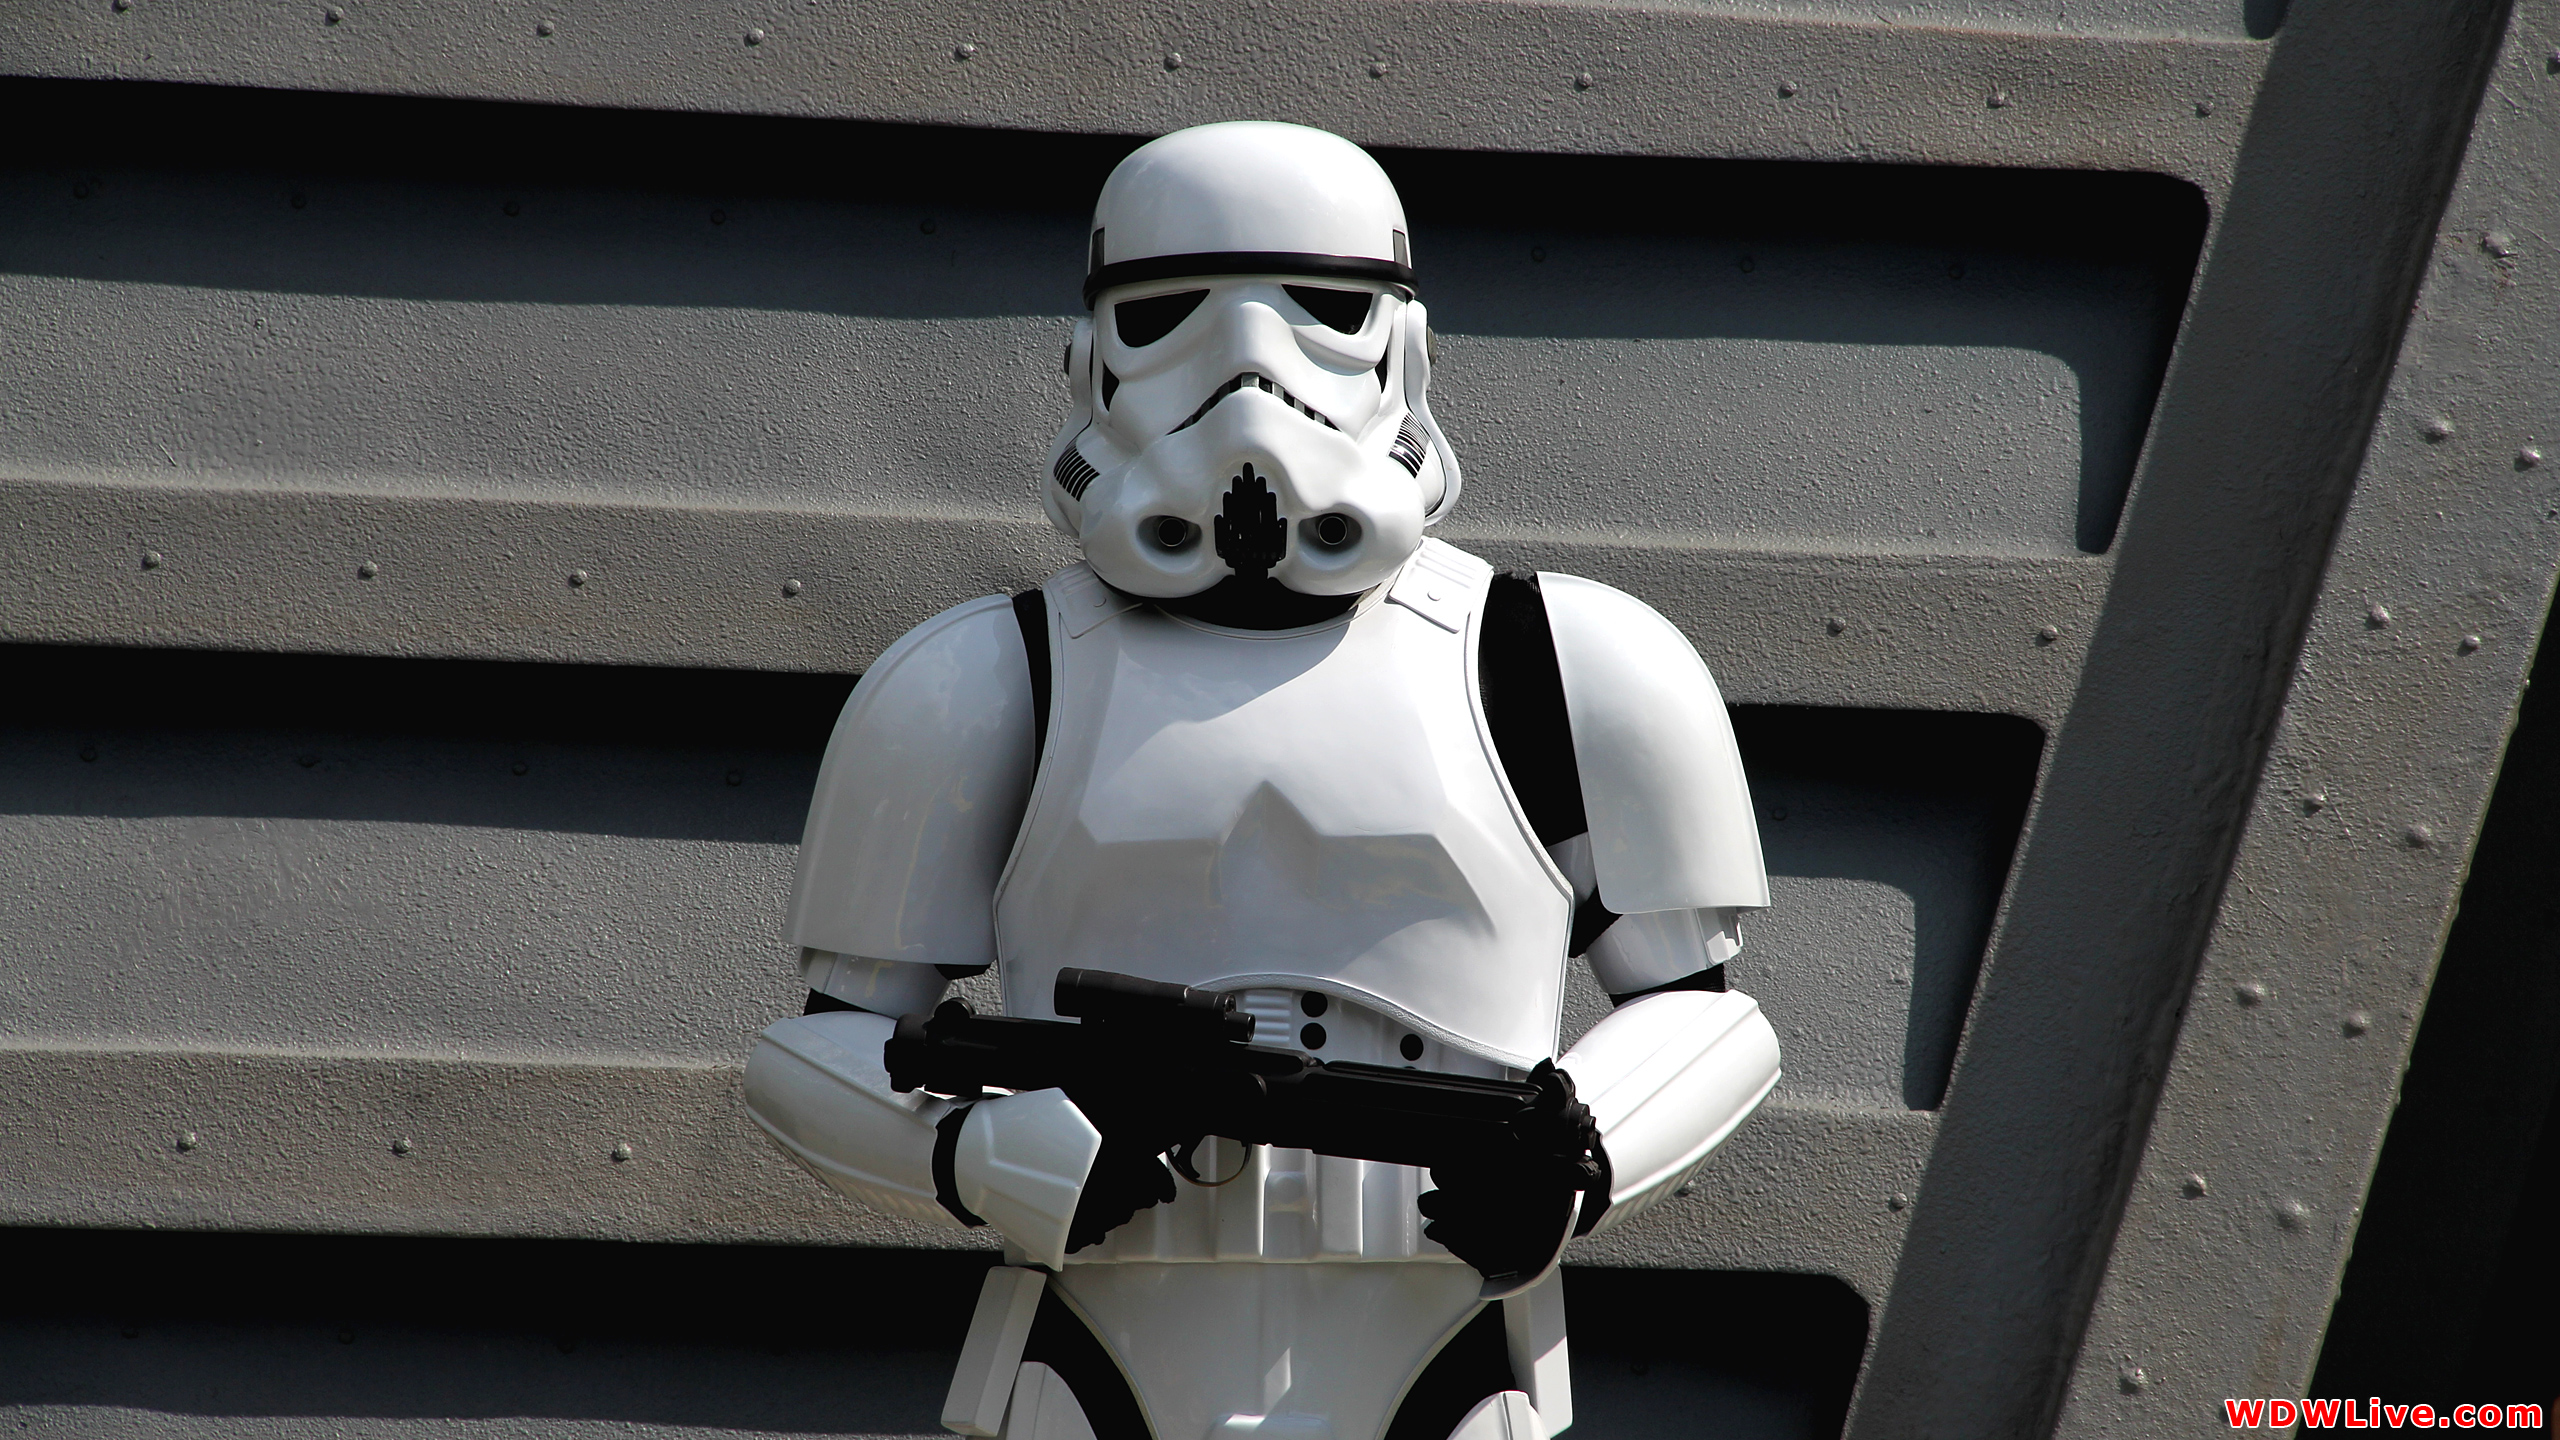 Star Wars Jedi Training Academy Imperial Stormtrooper standing guard 2560x1440